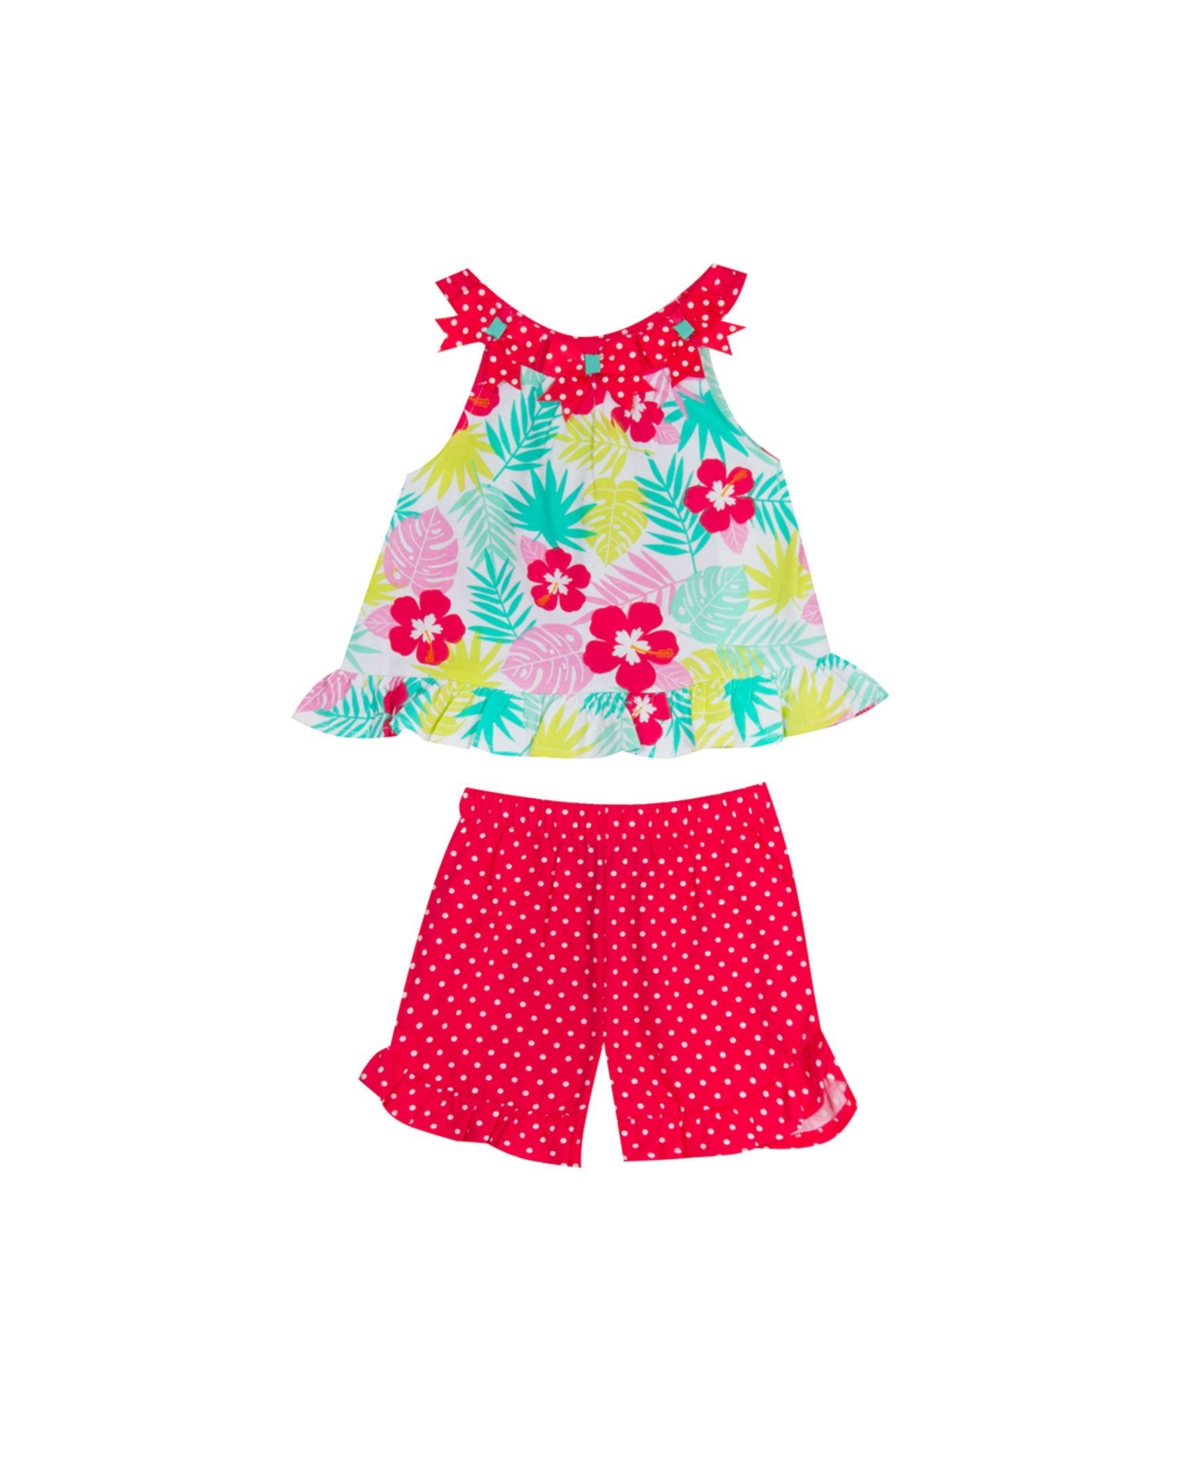 19166475 fpx - Kids & Baby Clothing